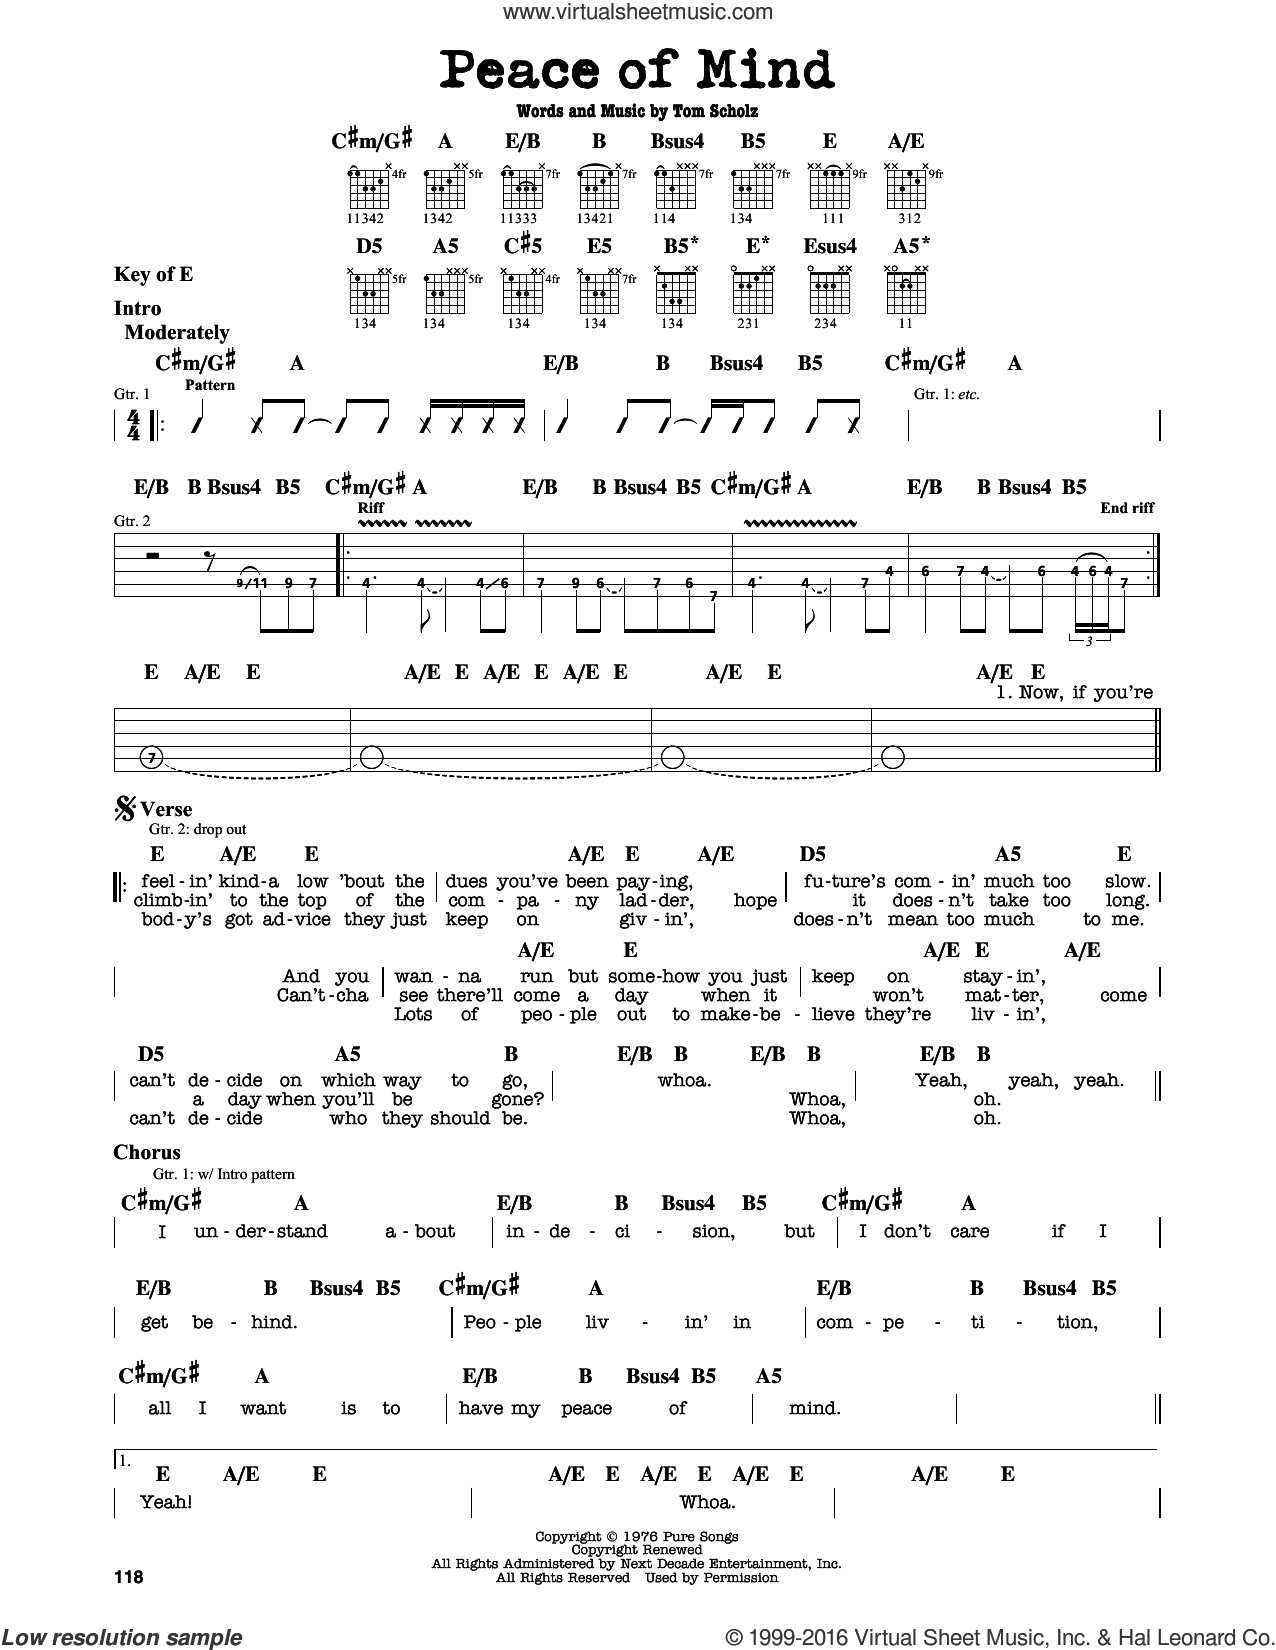 Peace Of Mind sheet music for guitar solo (lead sheet) by Boston. Score Image Preview.